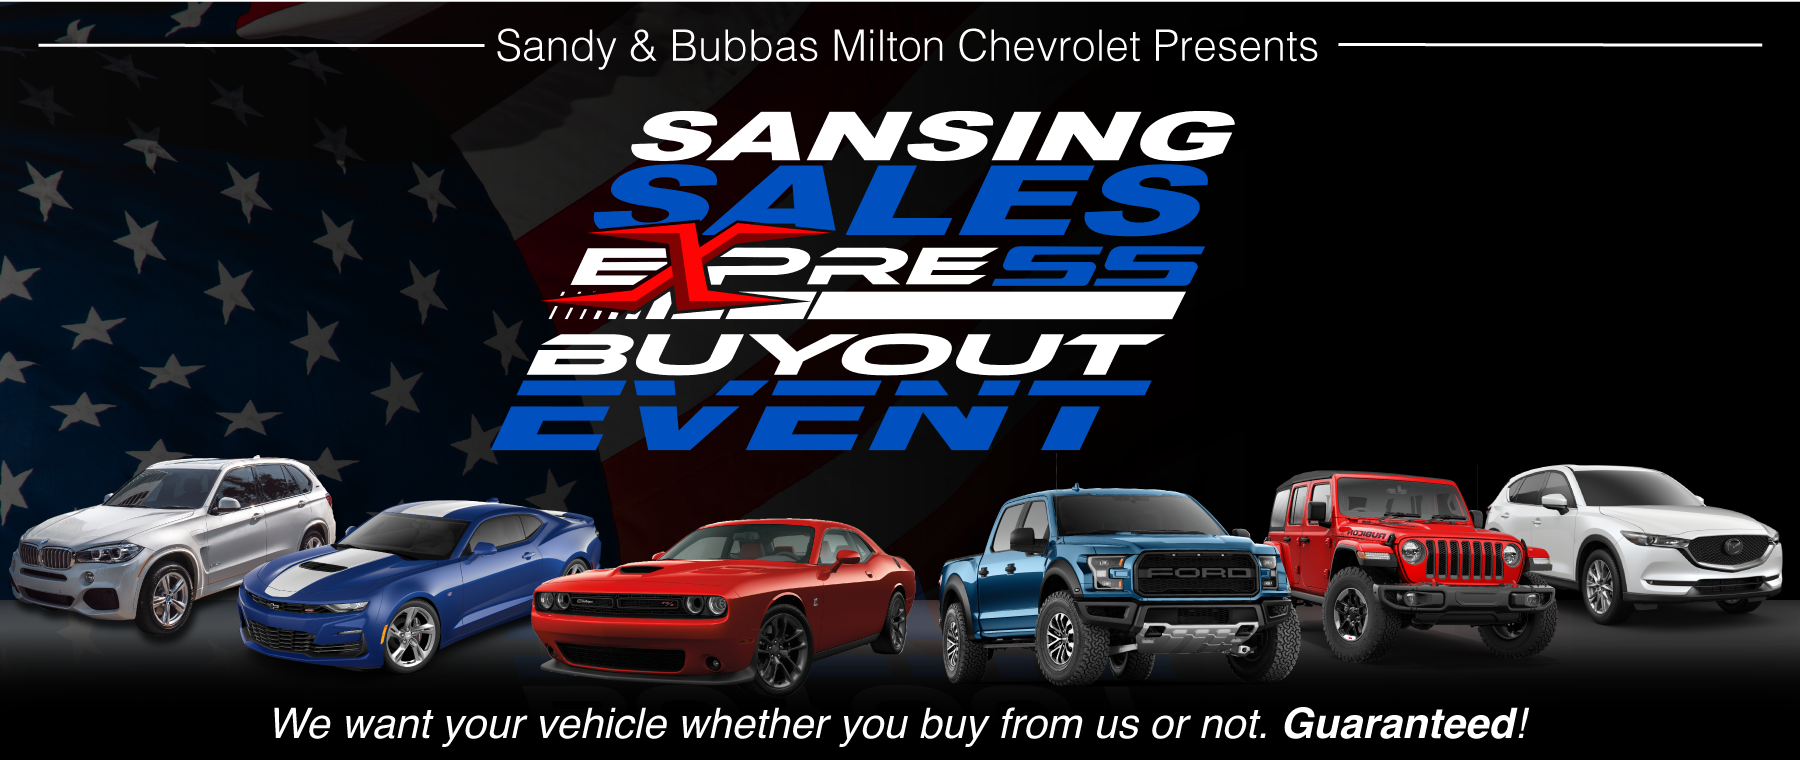 SSX-Website-Carousel-Banners-Dealerships_Website-Carousel-Graphic-S&B